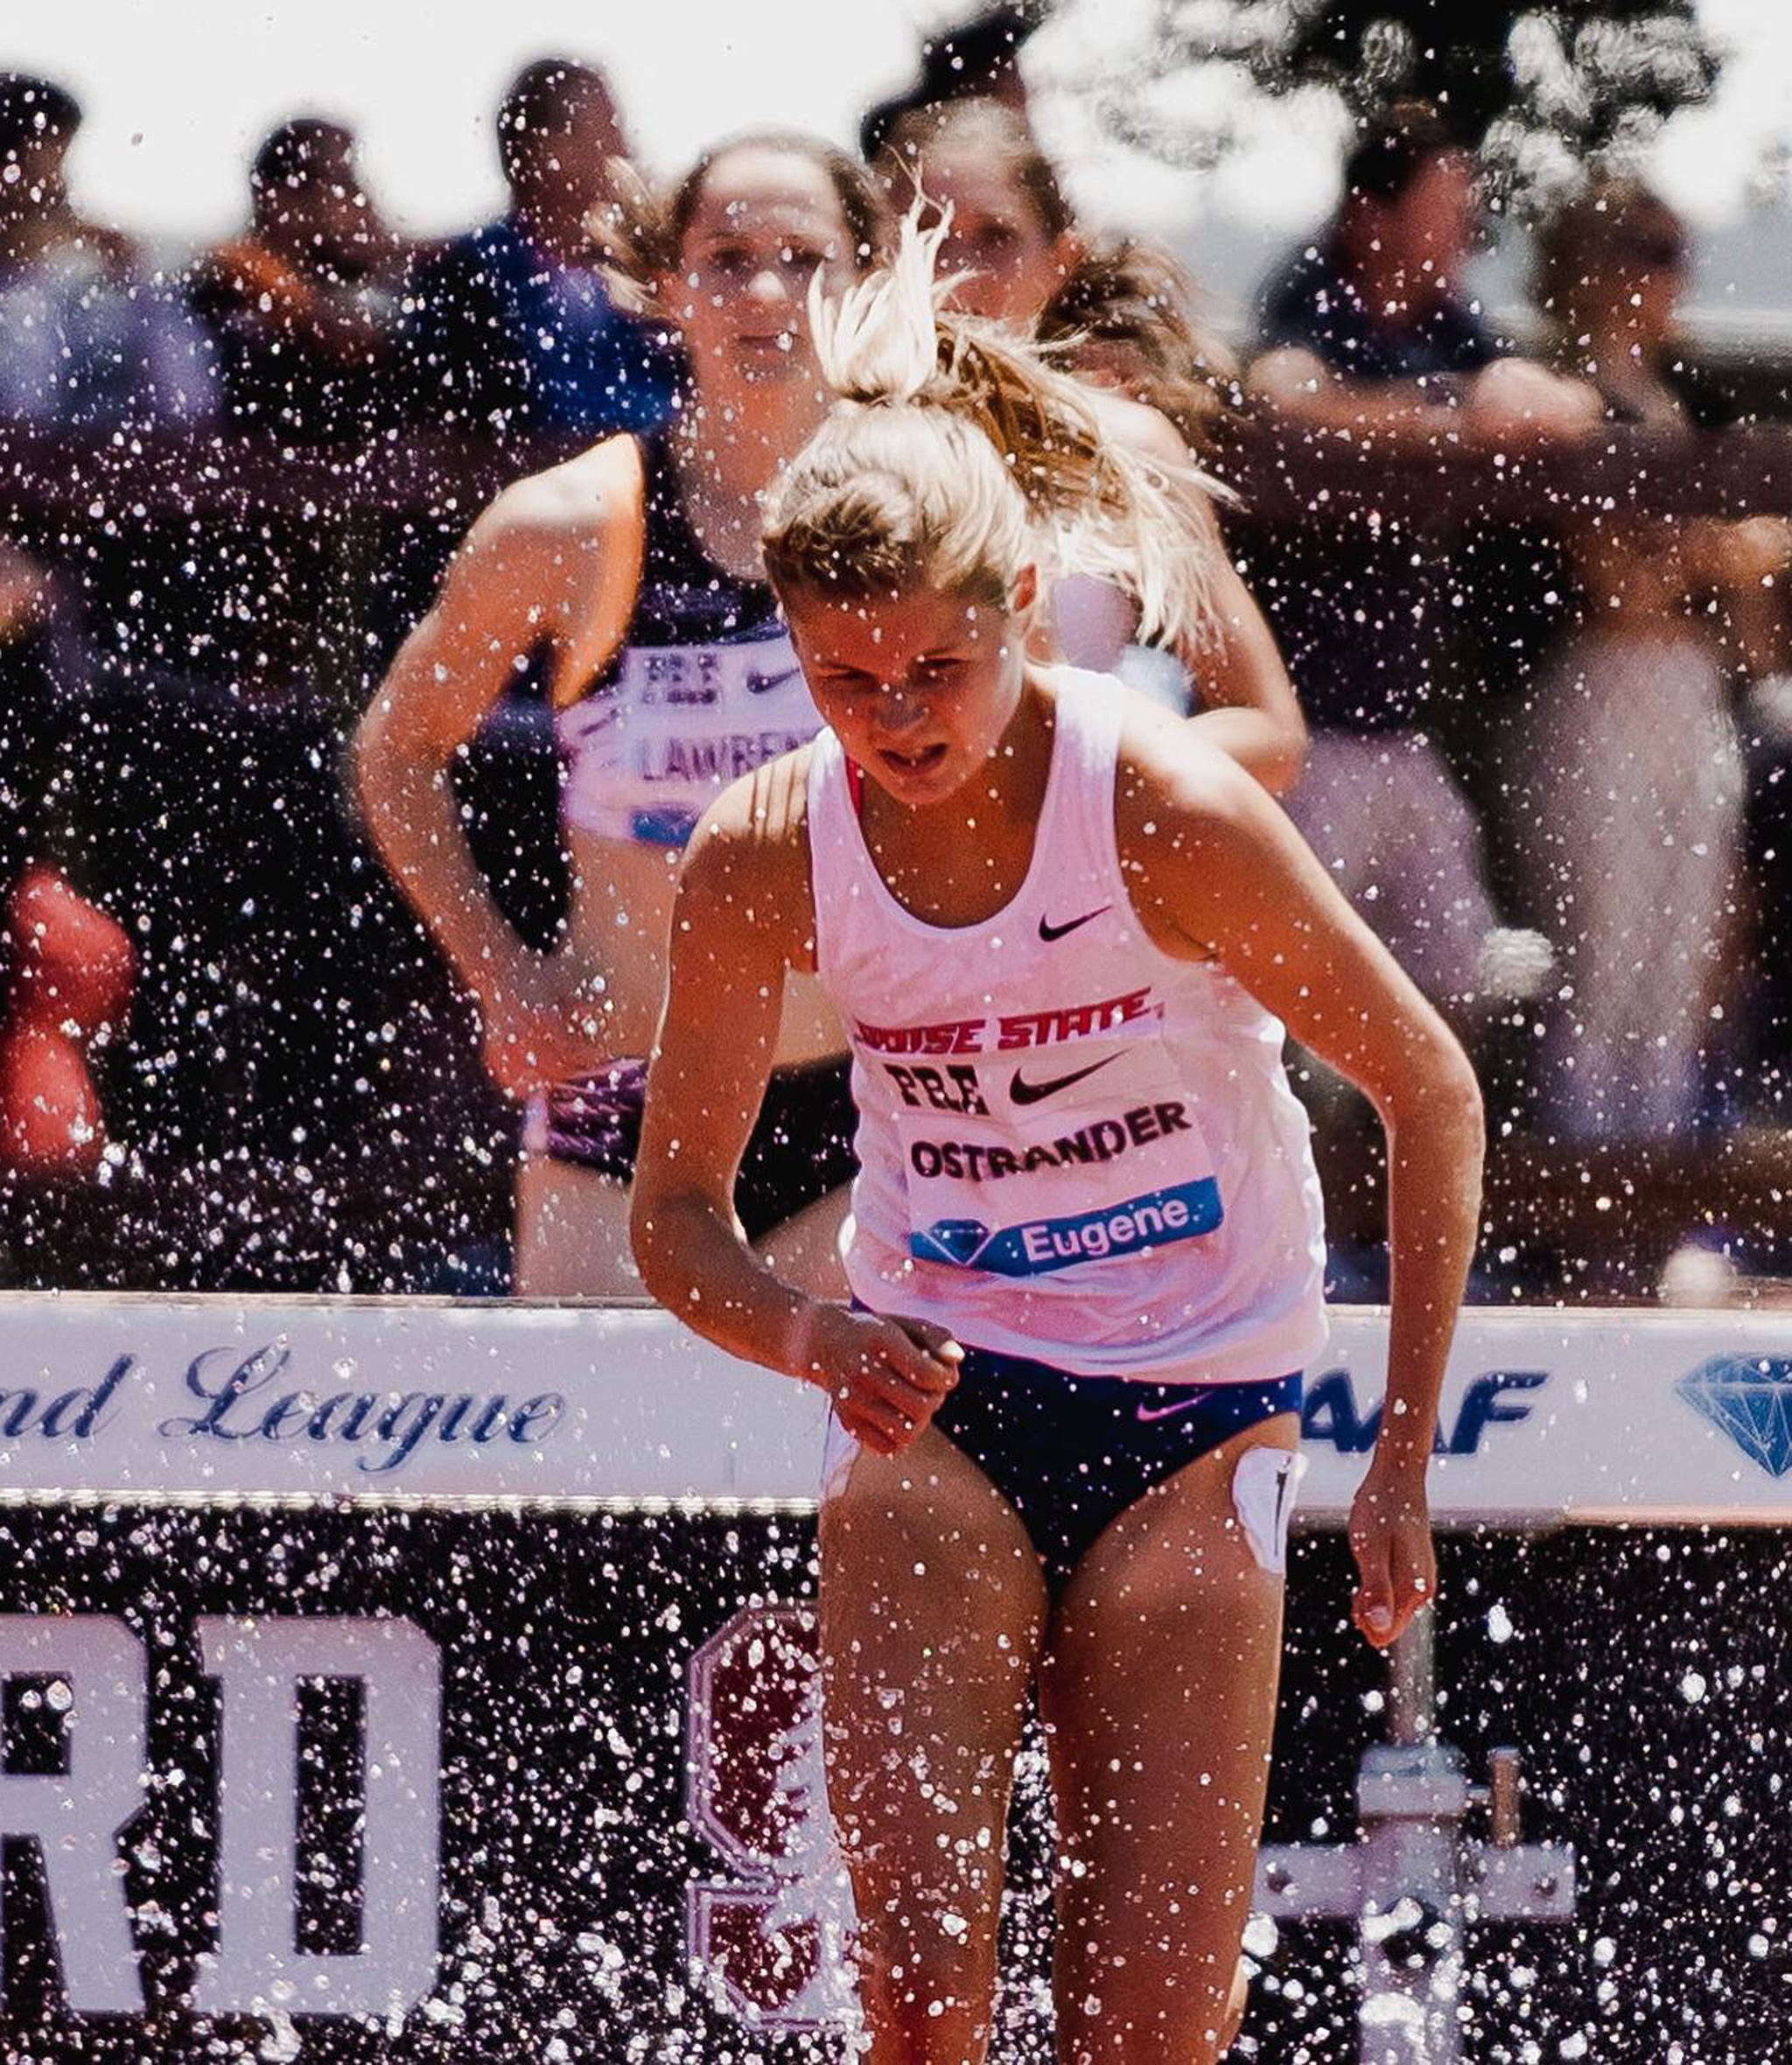 Boise State's Allie Ostrander competes in the women's 3,000-meter steeplechase final June 30 at the Prefontaine Classic at Stanford University in California. (Photo taken by Cortney White)